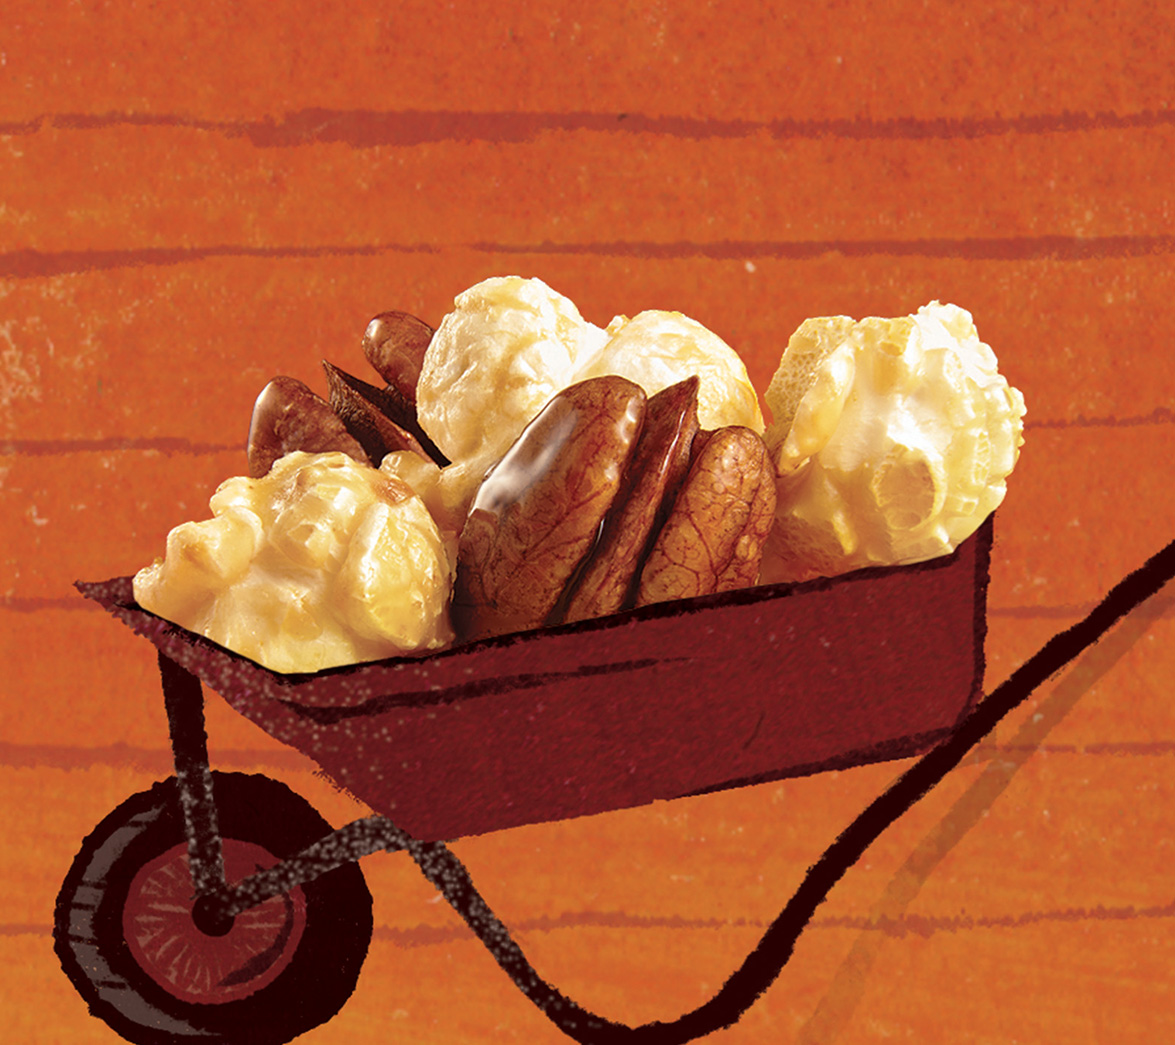 Animation of illustration for food startup brand Popcorn Shed, designed by White Bear Studio